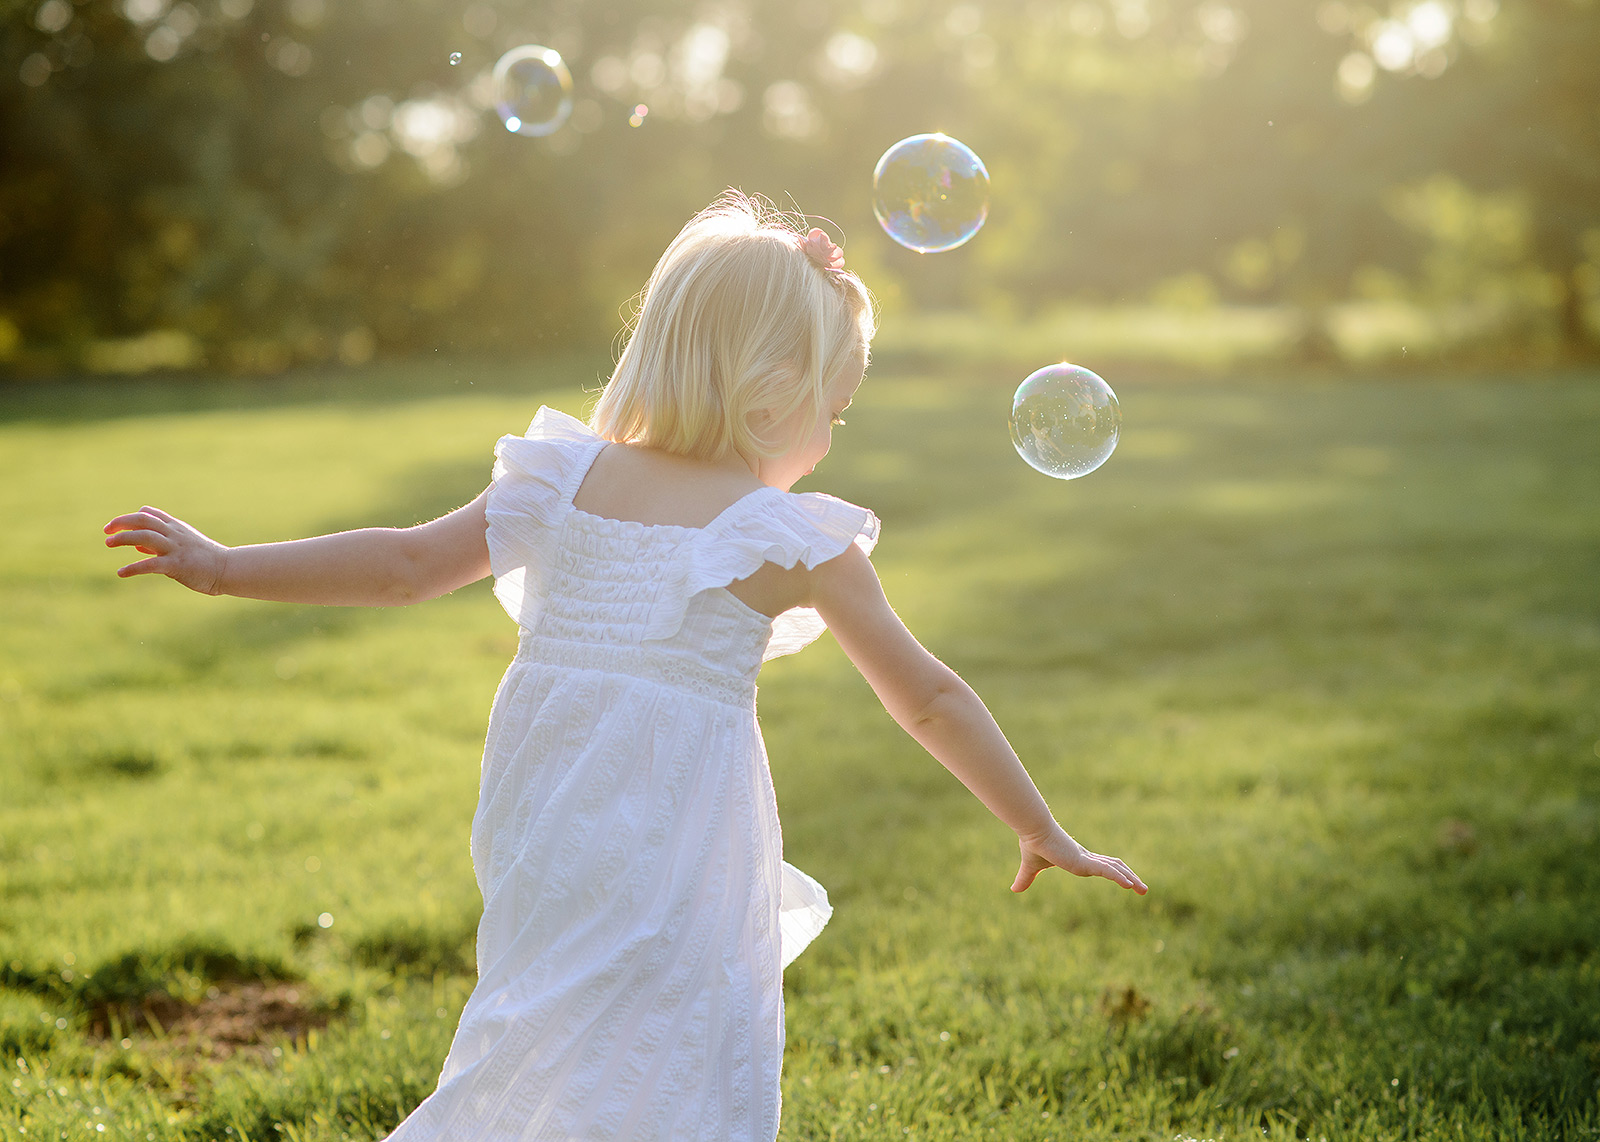 Daughter in white dress chasing after bubbles during Spring sunset